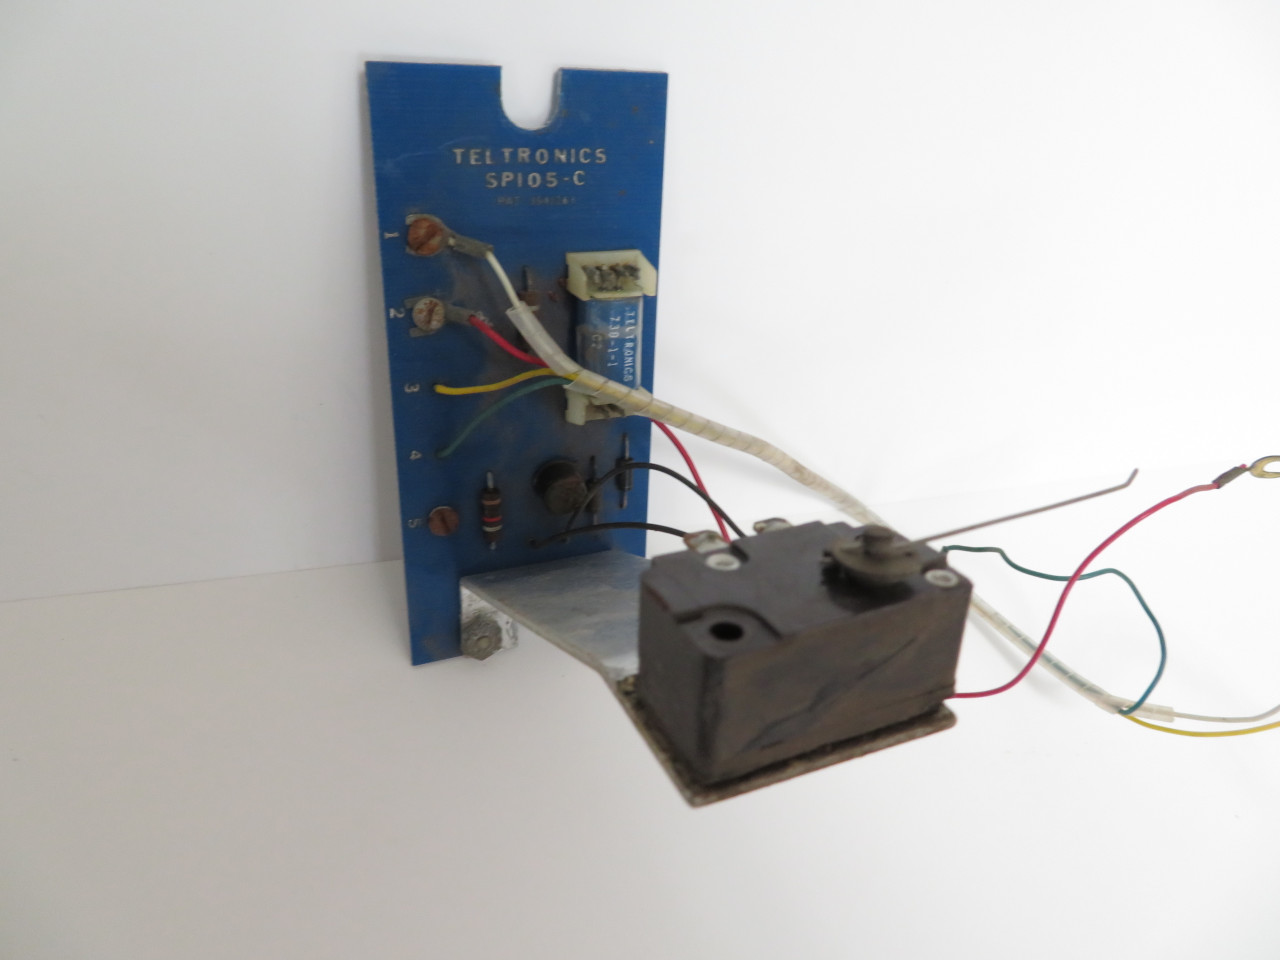 medium resolution of teltronics sp 105 coin relay 3 slot payphone3 slot payphone image 1 loading zoom